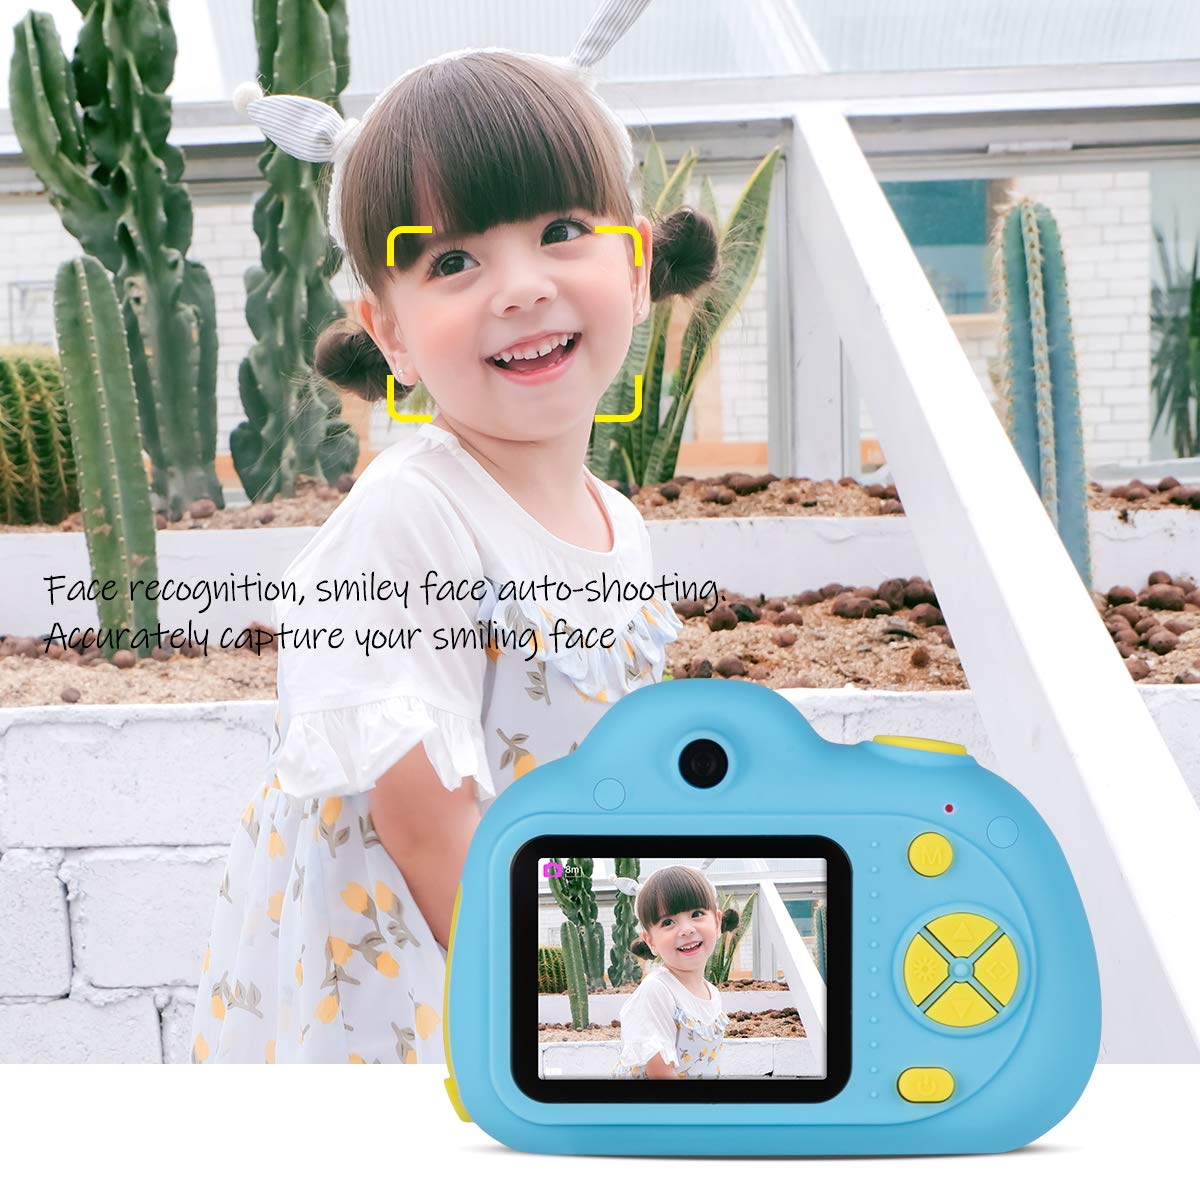 Kids Cameras Dual Selfie Digital Camera HD Video Recorder Action Camera Camcorder for 4-9 Year Old Kids Birthday Festival Gifts Toys for Children Boys Girls 2.0'' LCD Screen 4X Digital Zoom (Blue) by Tyhbelle (Image #3)